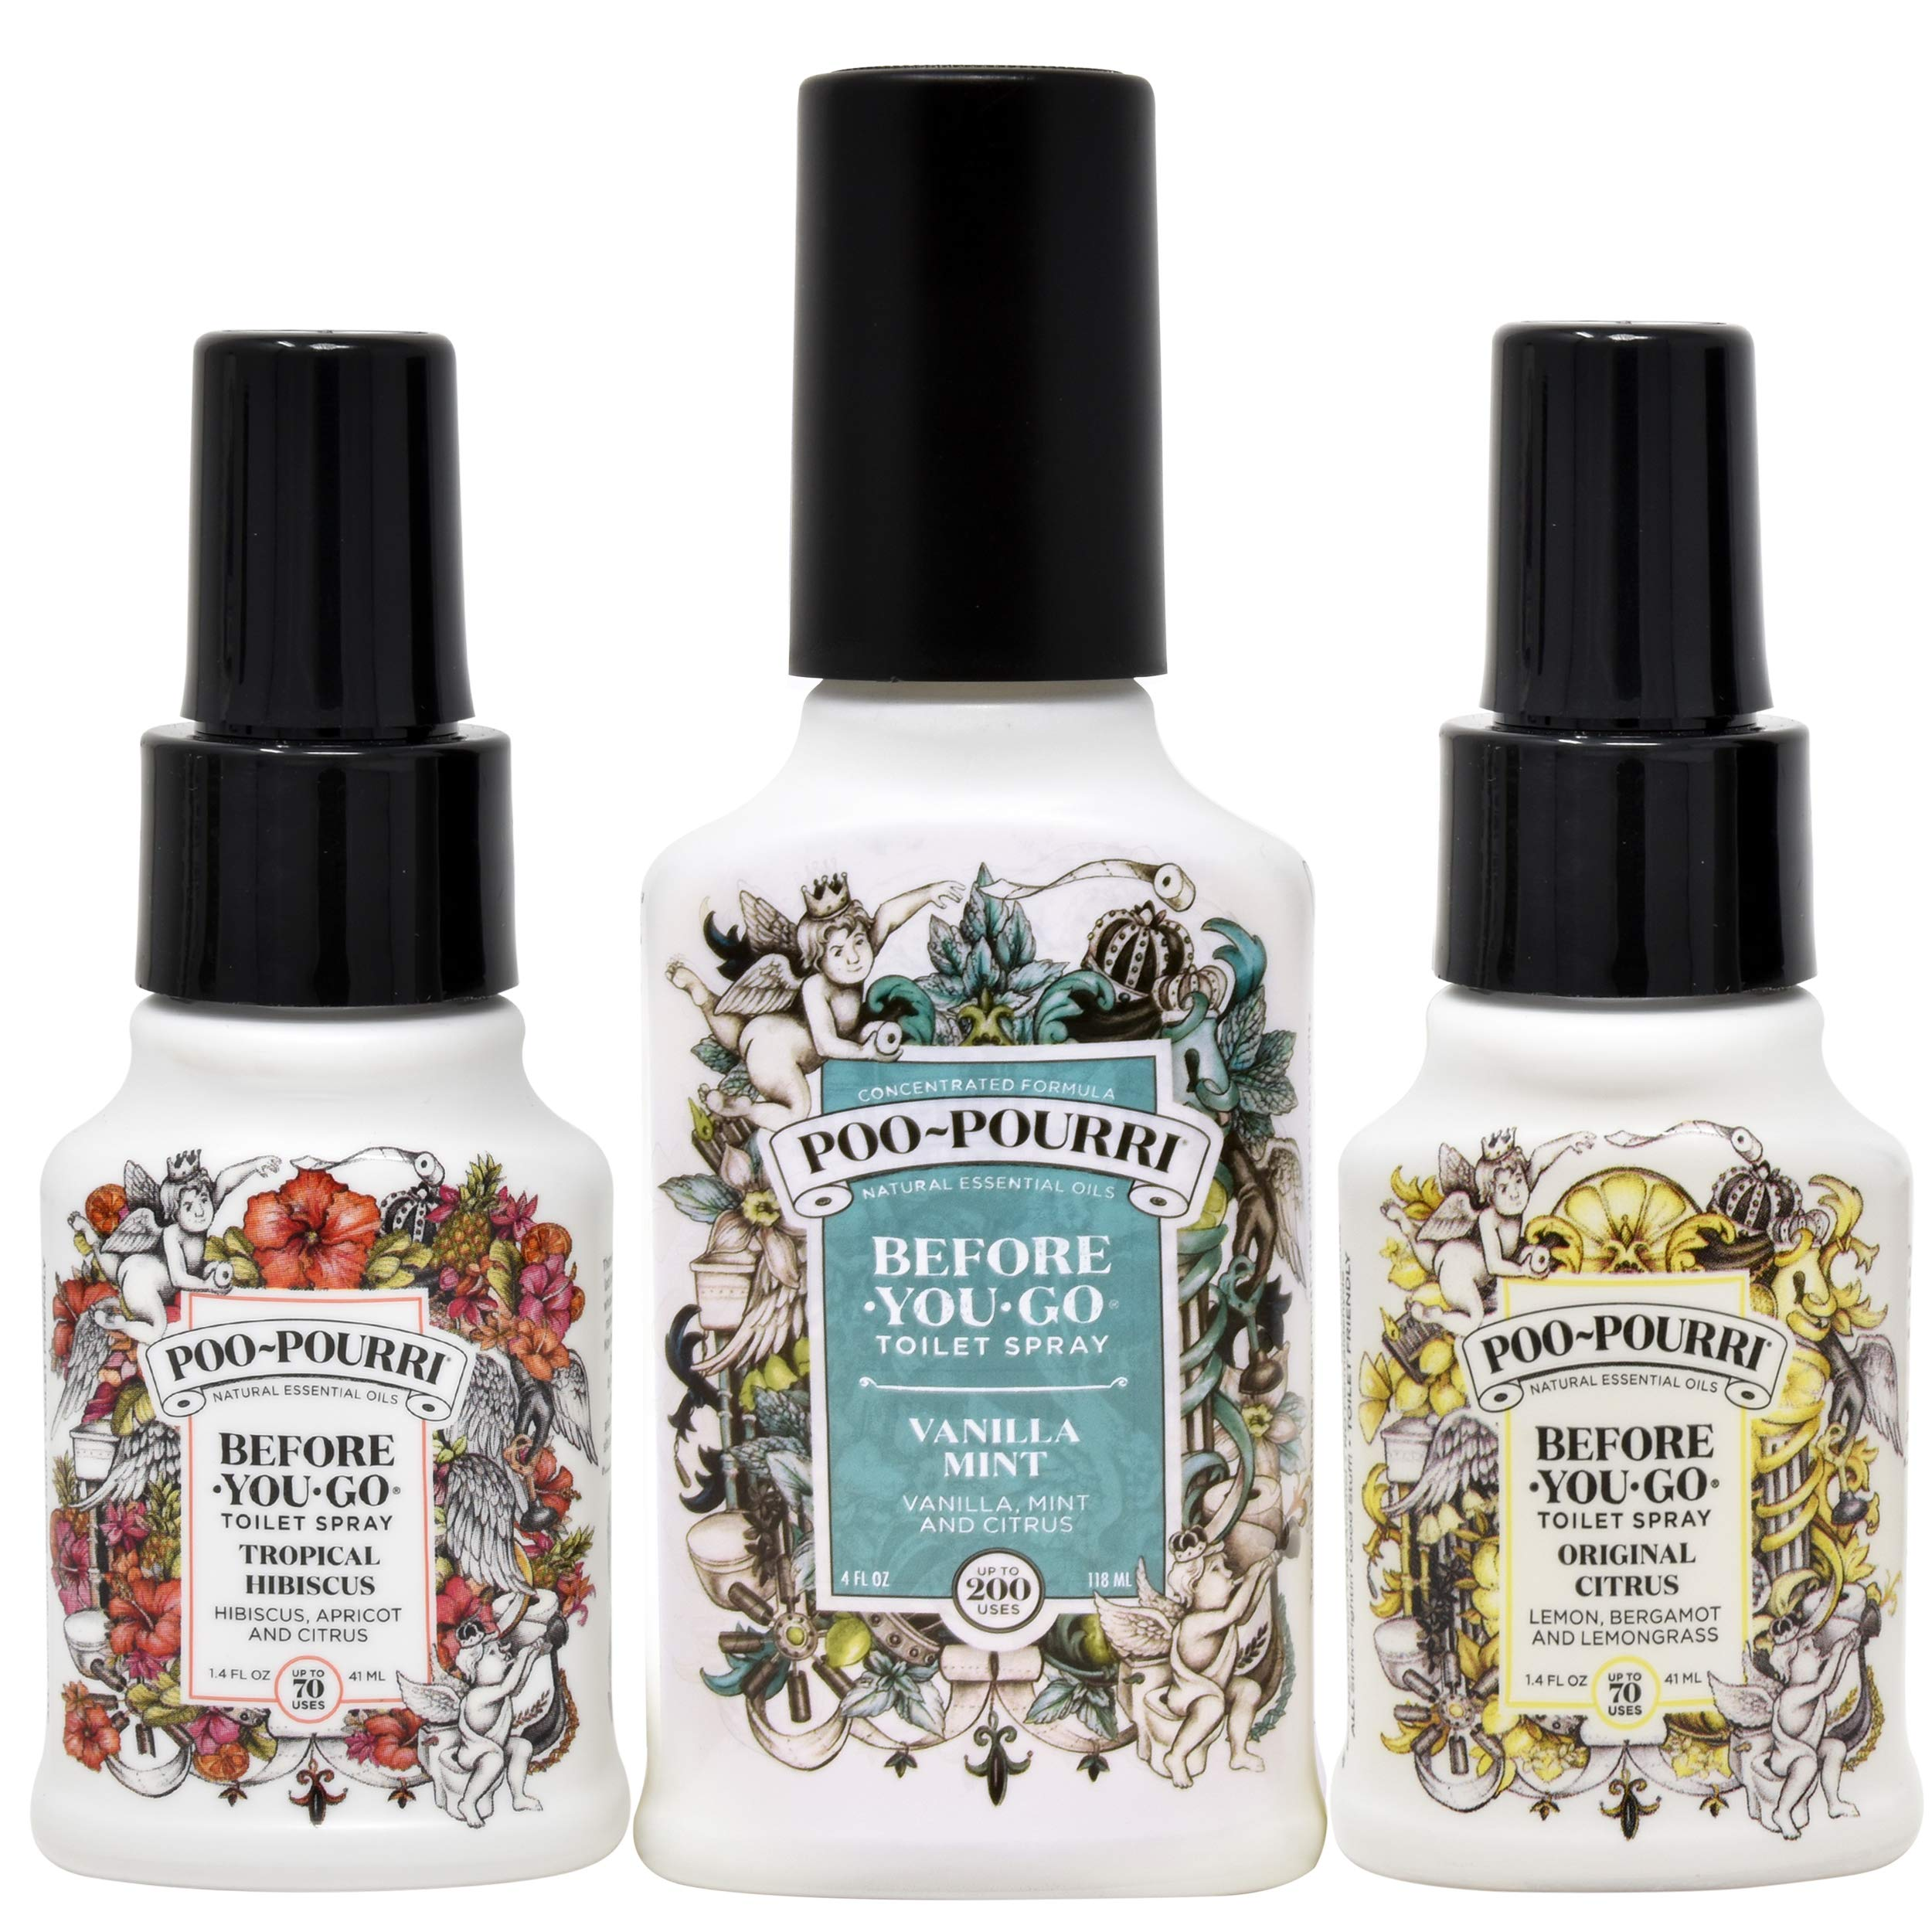 Poo-Pourri Vanilla Mint 4 Ounce, Tropical Hibiscus 1.4 Ounce and Original Citrus 1.4 Ounce